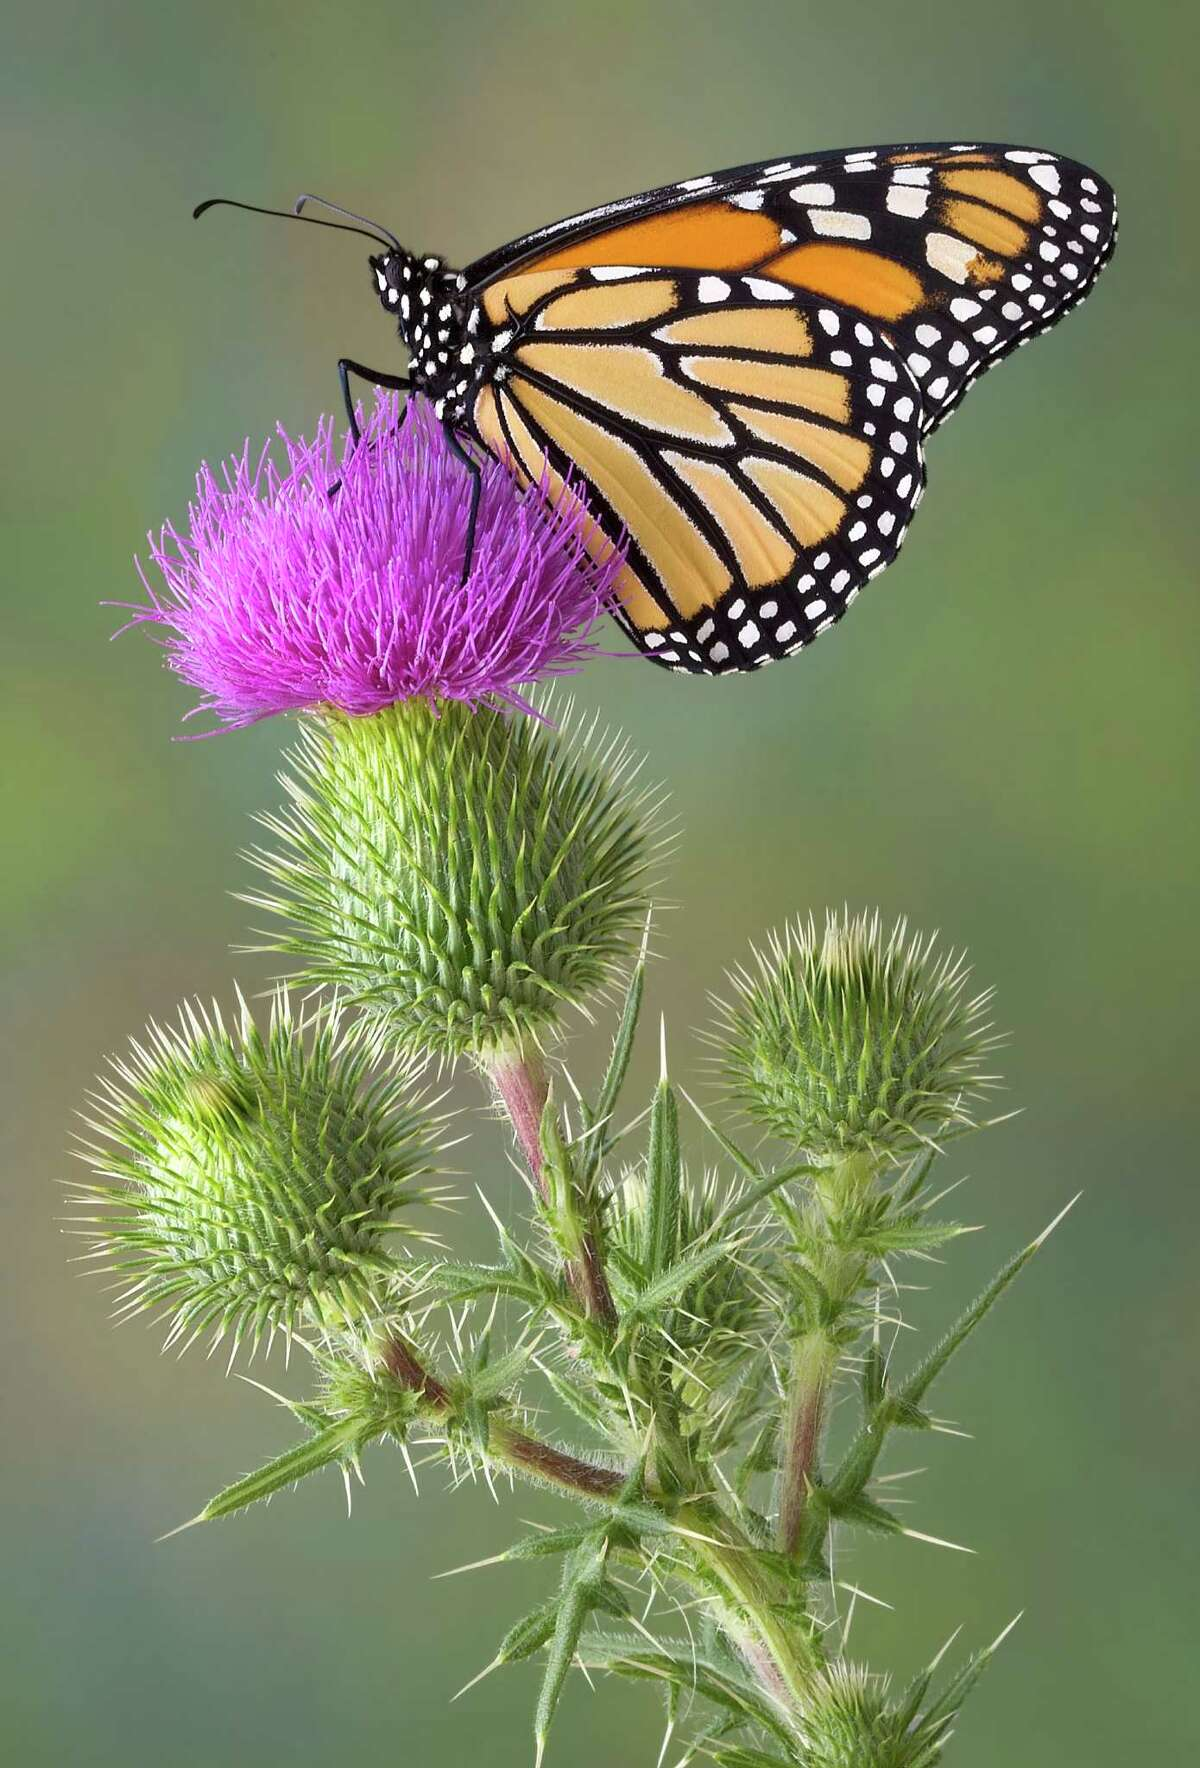 Take a hike through the Katy Prairie while learning about monarch butterflies during Monarch Madness at the Indiangrass Preserve.